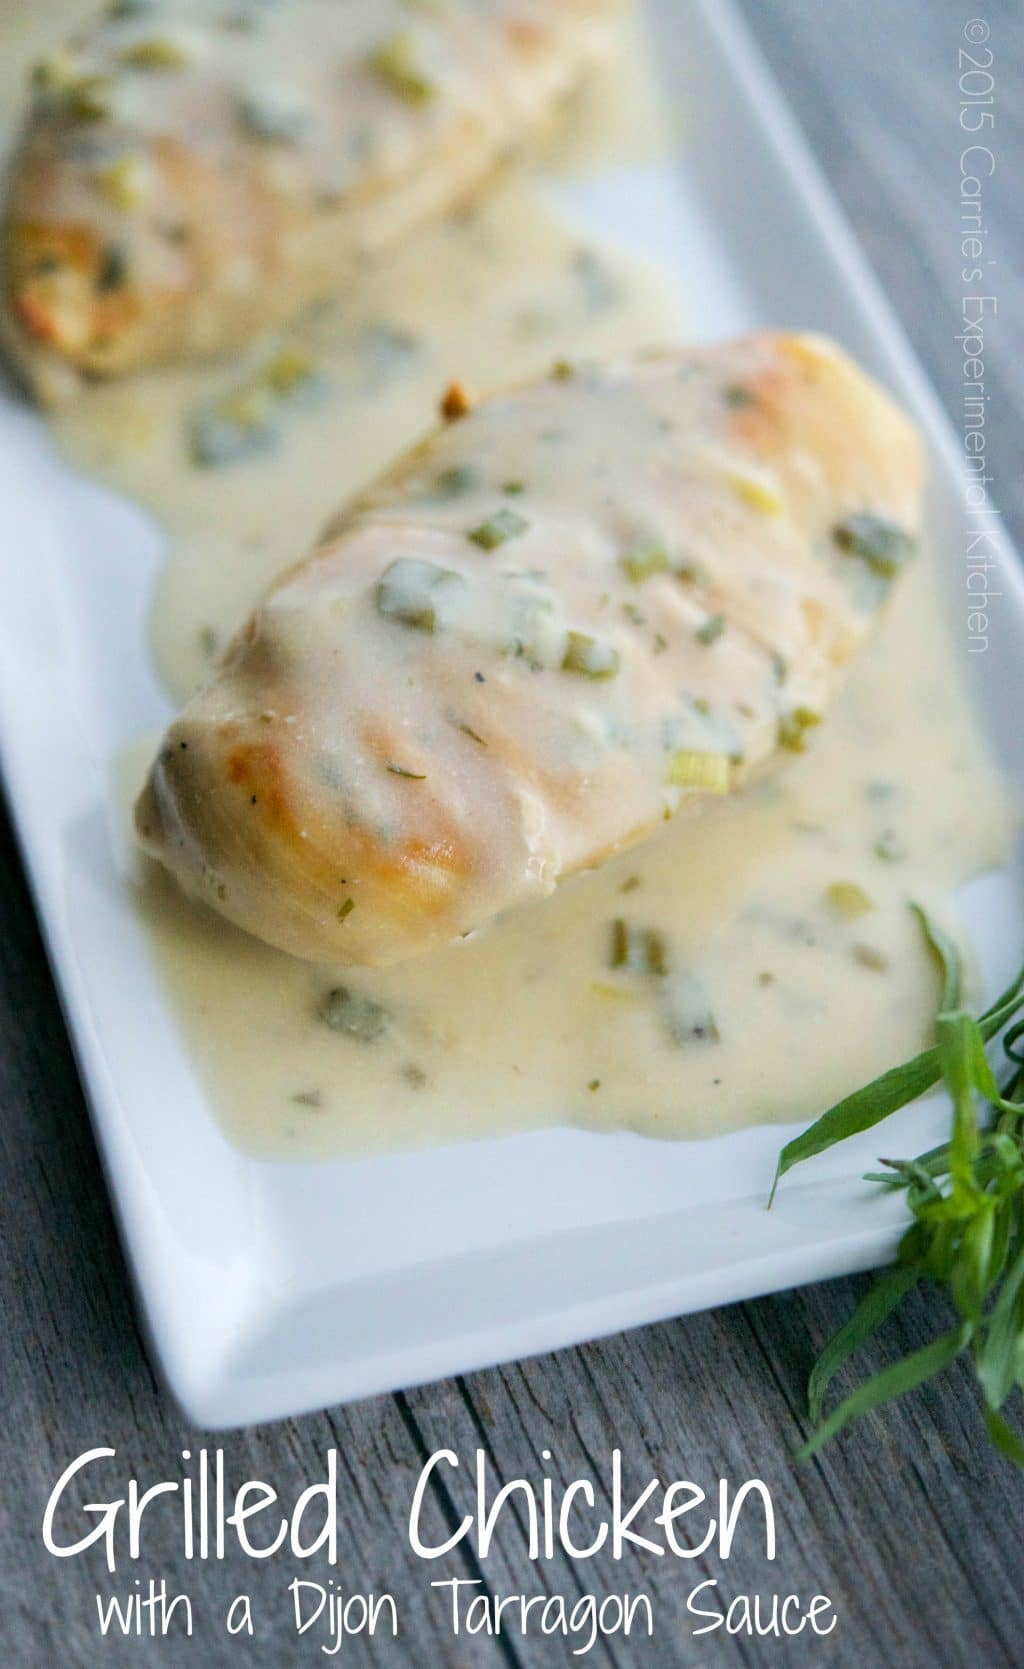 ... Grilled Chicken with a Dijon Tarragon Sauce. It's seriously good and